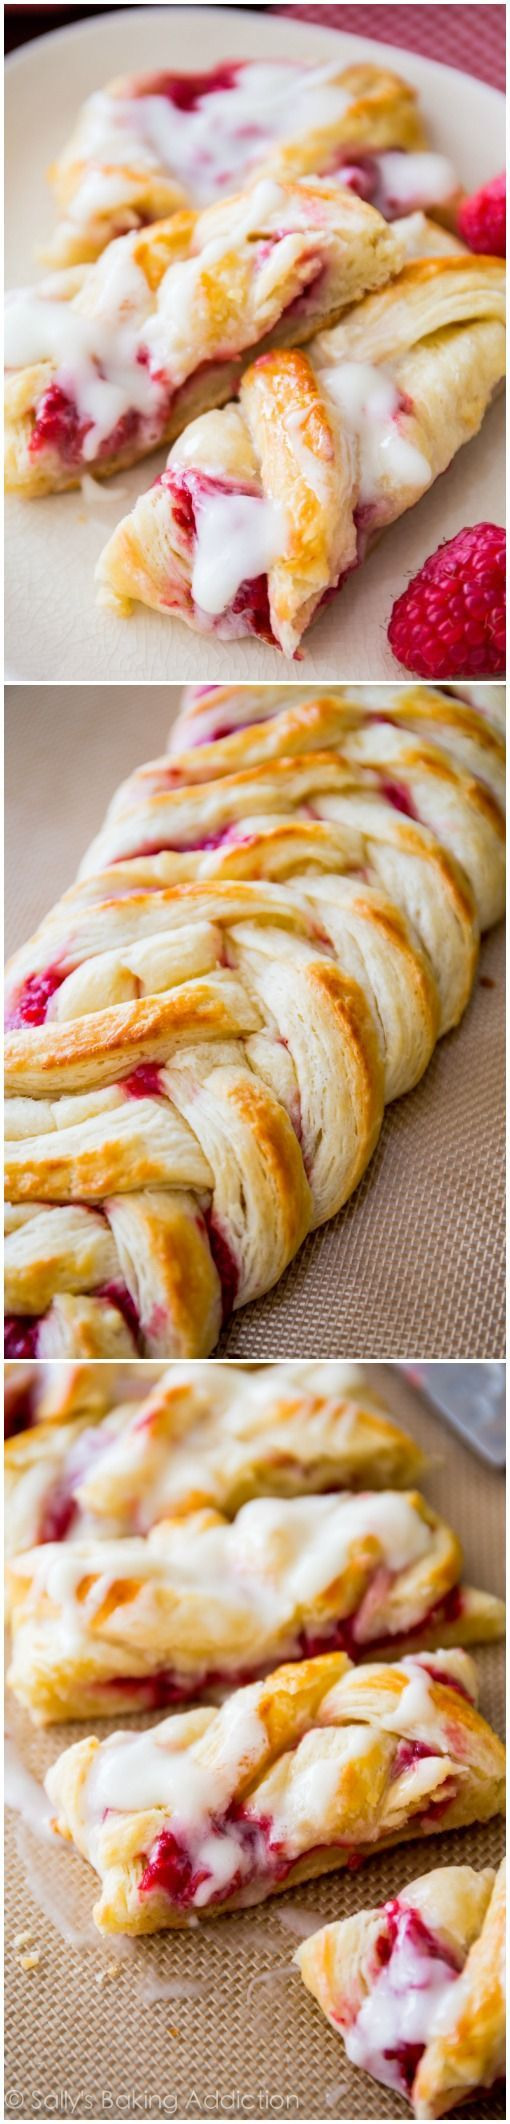 Pastry Recipe Danish From Scratch With Step By Photos Make This